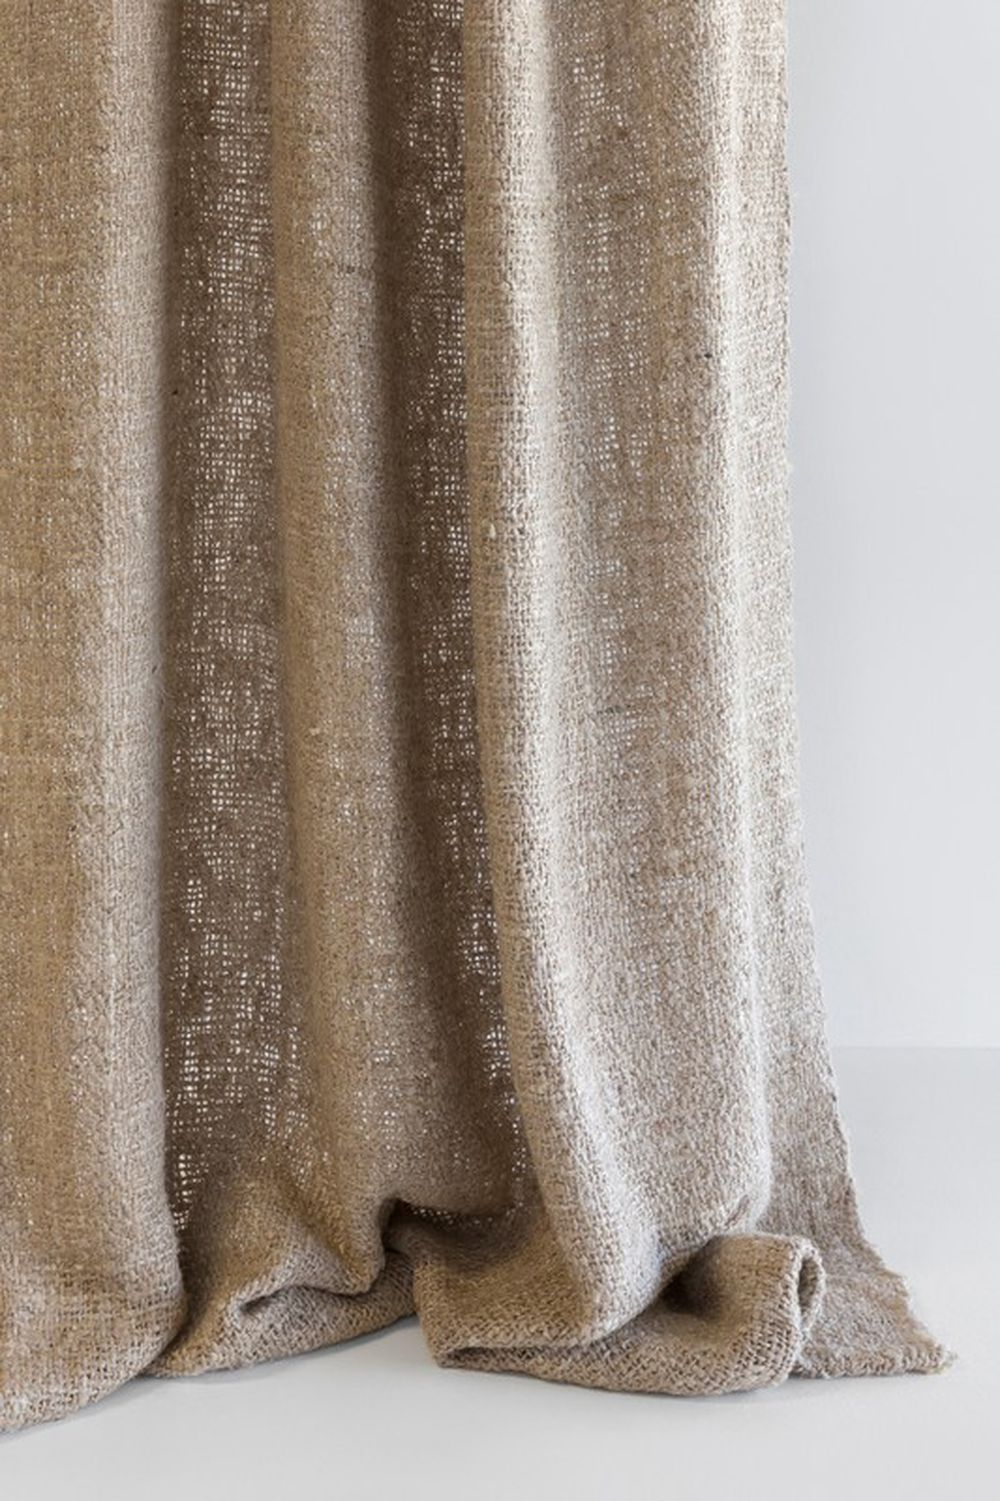 Photo of the fabric Handloom Linen in situ by Mokum. Use for Drapery, Accessory. Style of Decorative, Plain